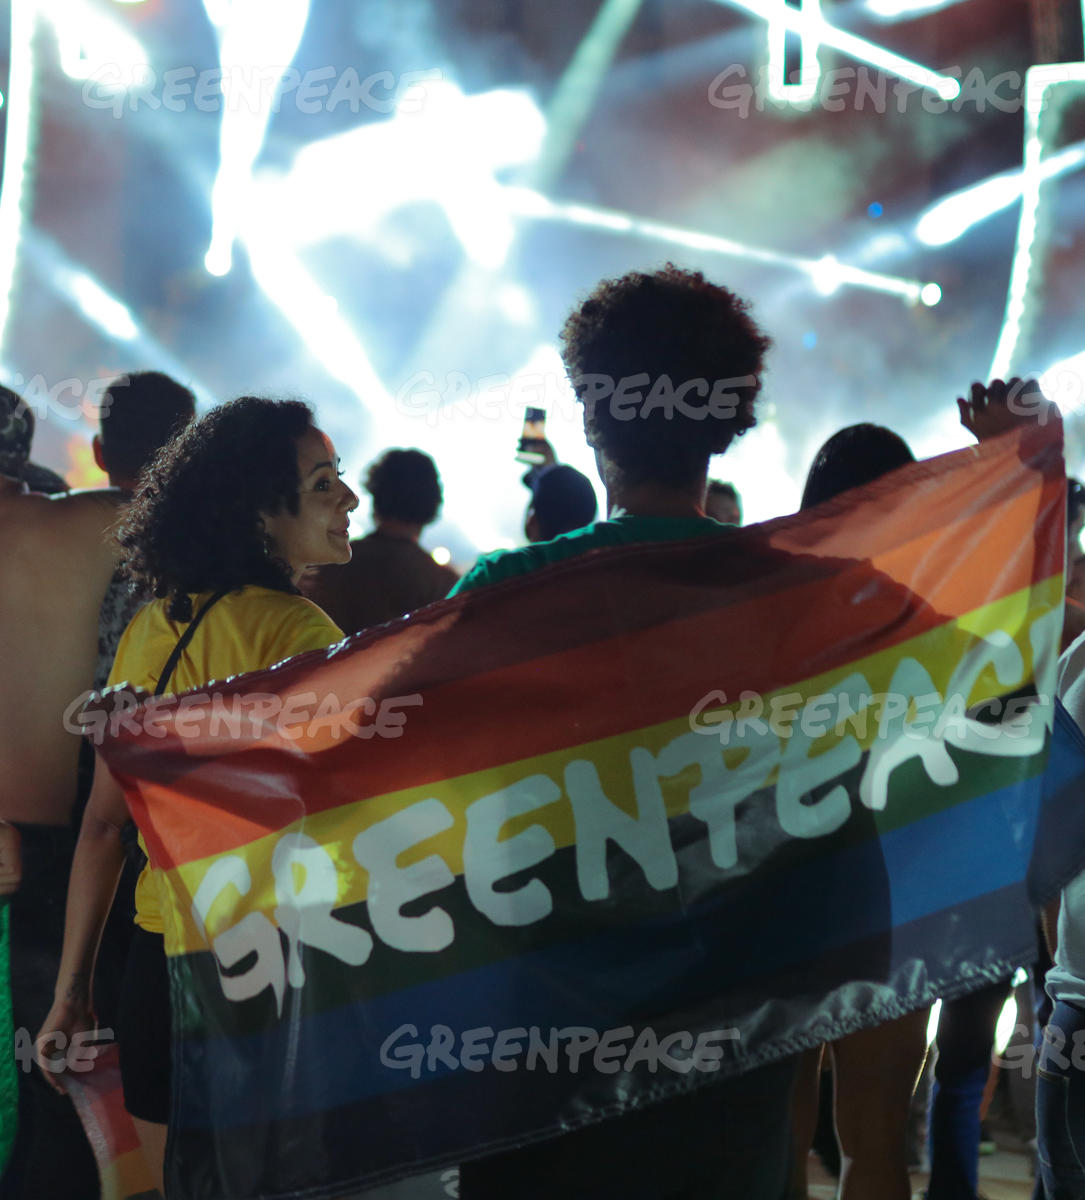 Greenpeace Brazil Joins the Amazon-themed LGBT Party in Sao Paulo